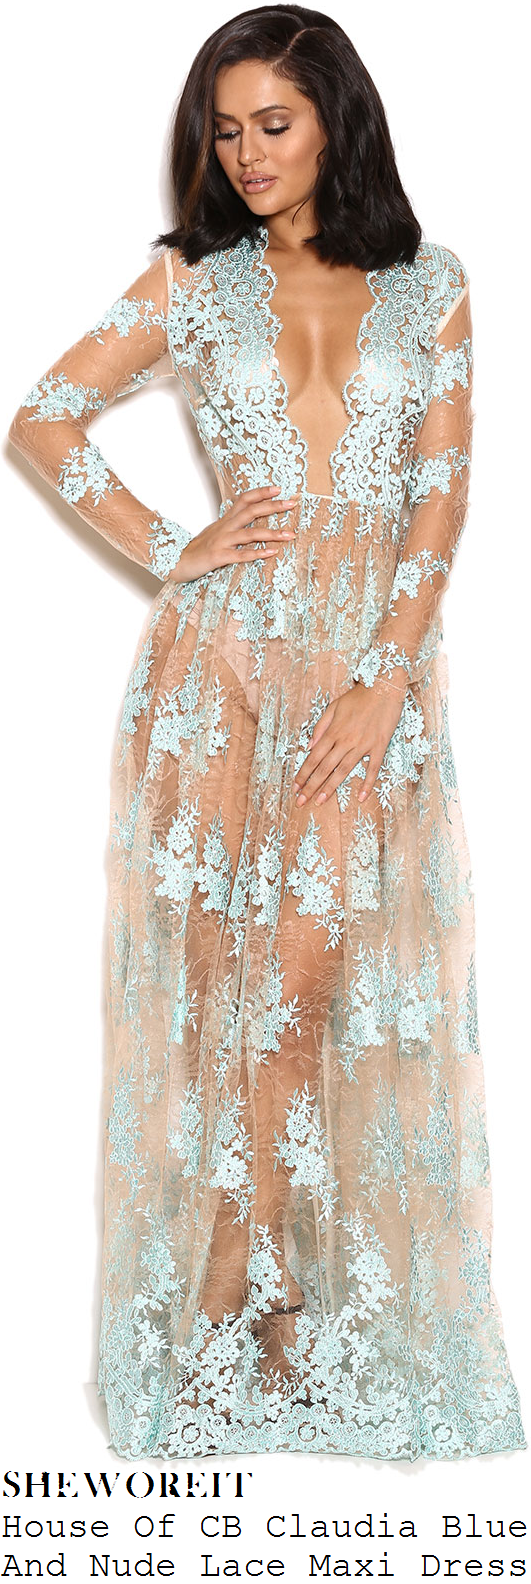 danielle-armstrong-nude-and-pale-baby-blue-floral-lace-applique-long-sleeve-plunge-front-sheer-mesh-maxi-dress-towie-gran-canaria-pool-party